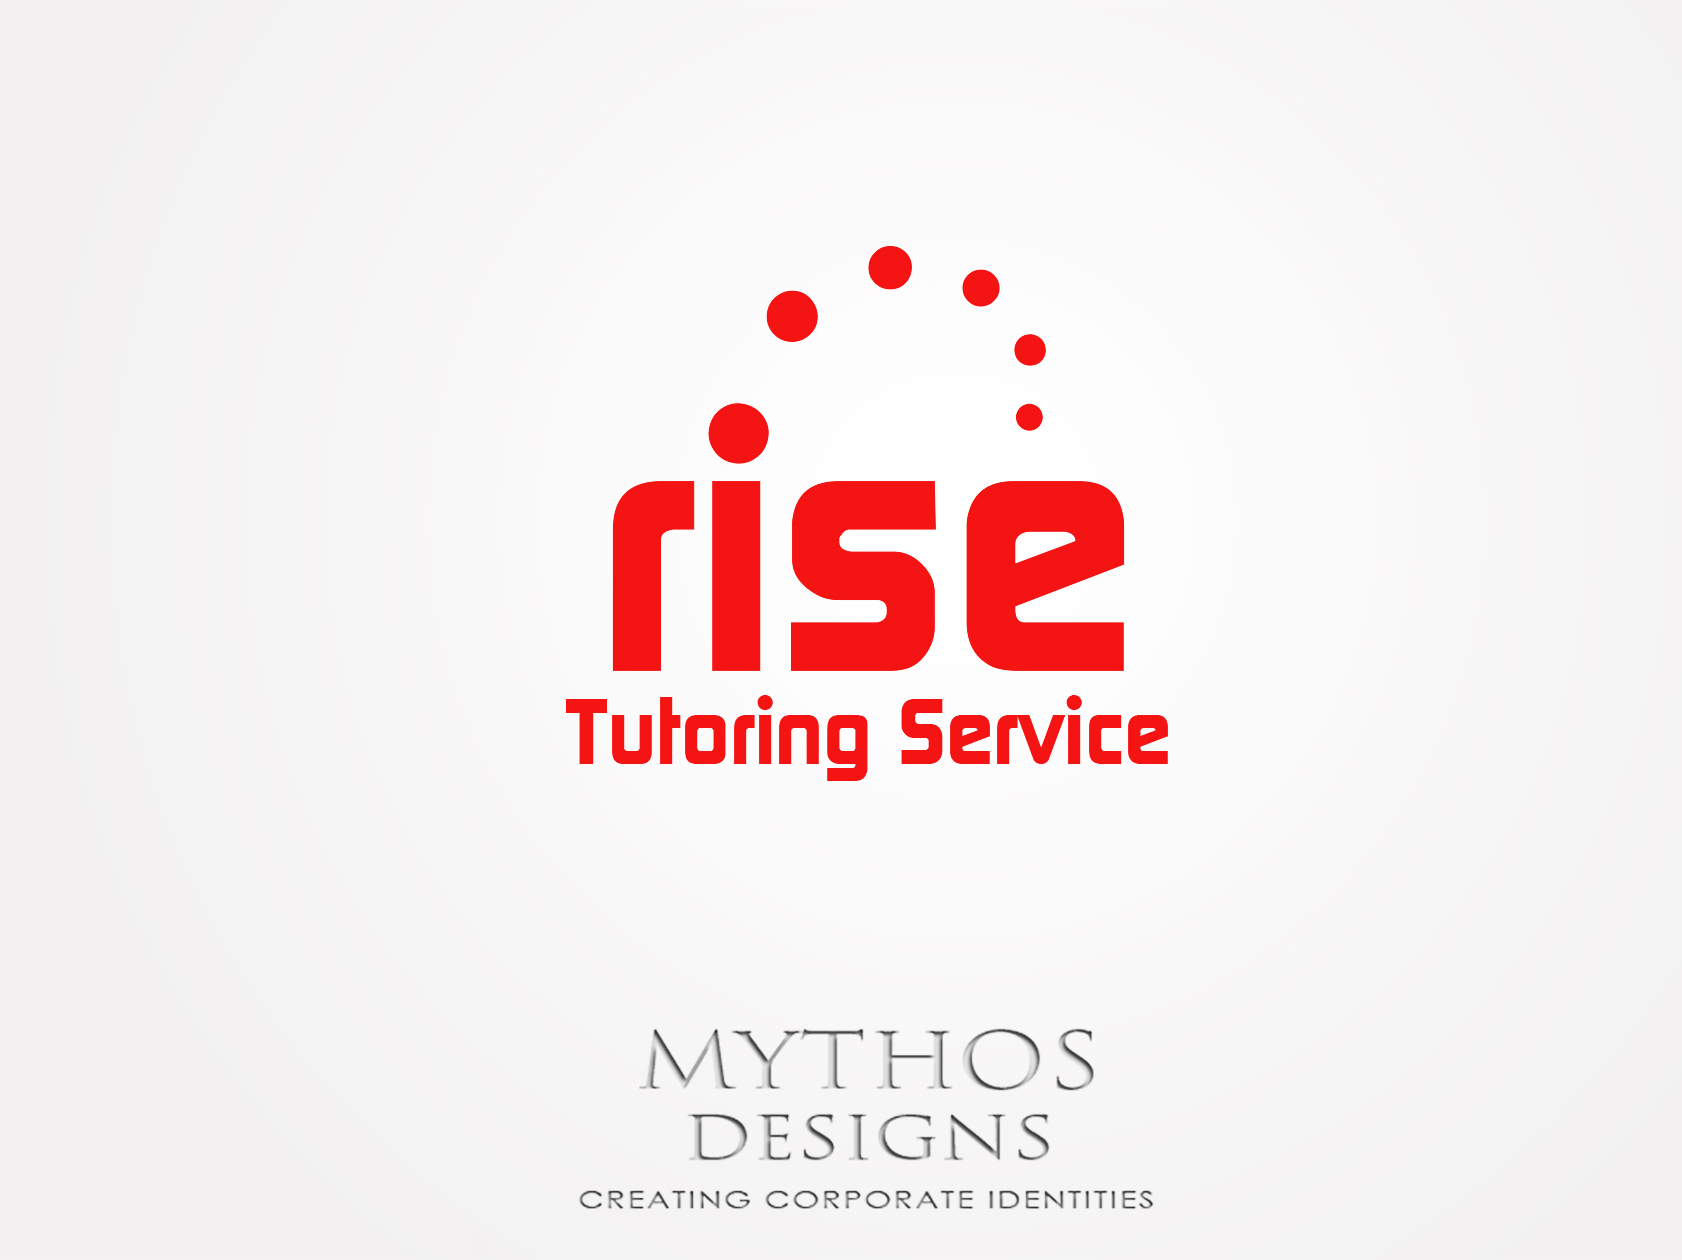 Logo Design by Mythos Designs - Entry No. 142 in the Logo Design Contest Imaginative Logo Design for Rise Tutoring Service.